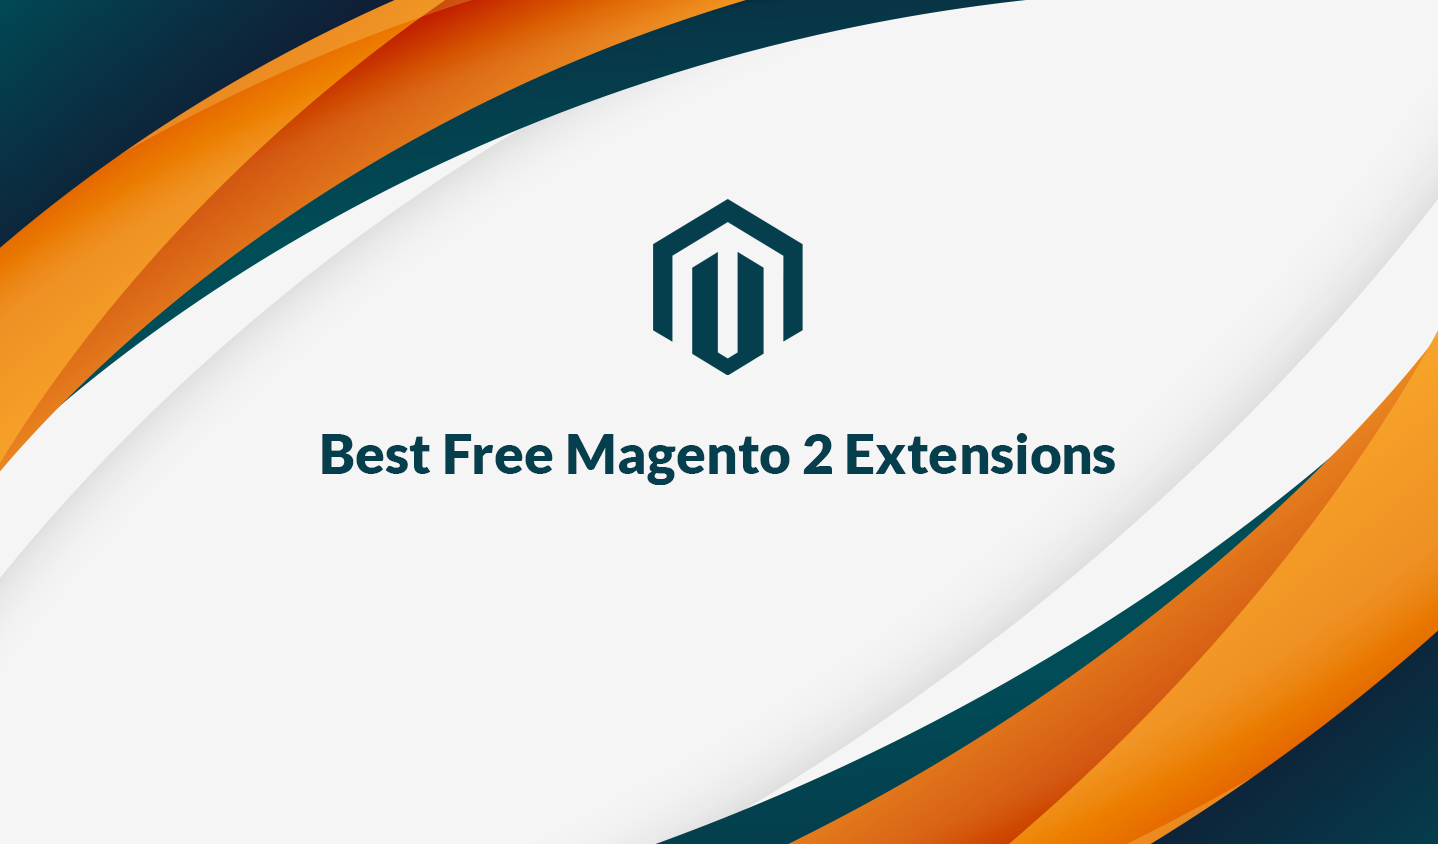 15+ Best Free Magento 2 Extensions for your Ecommerce Store